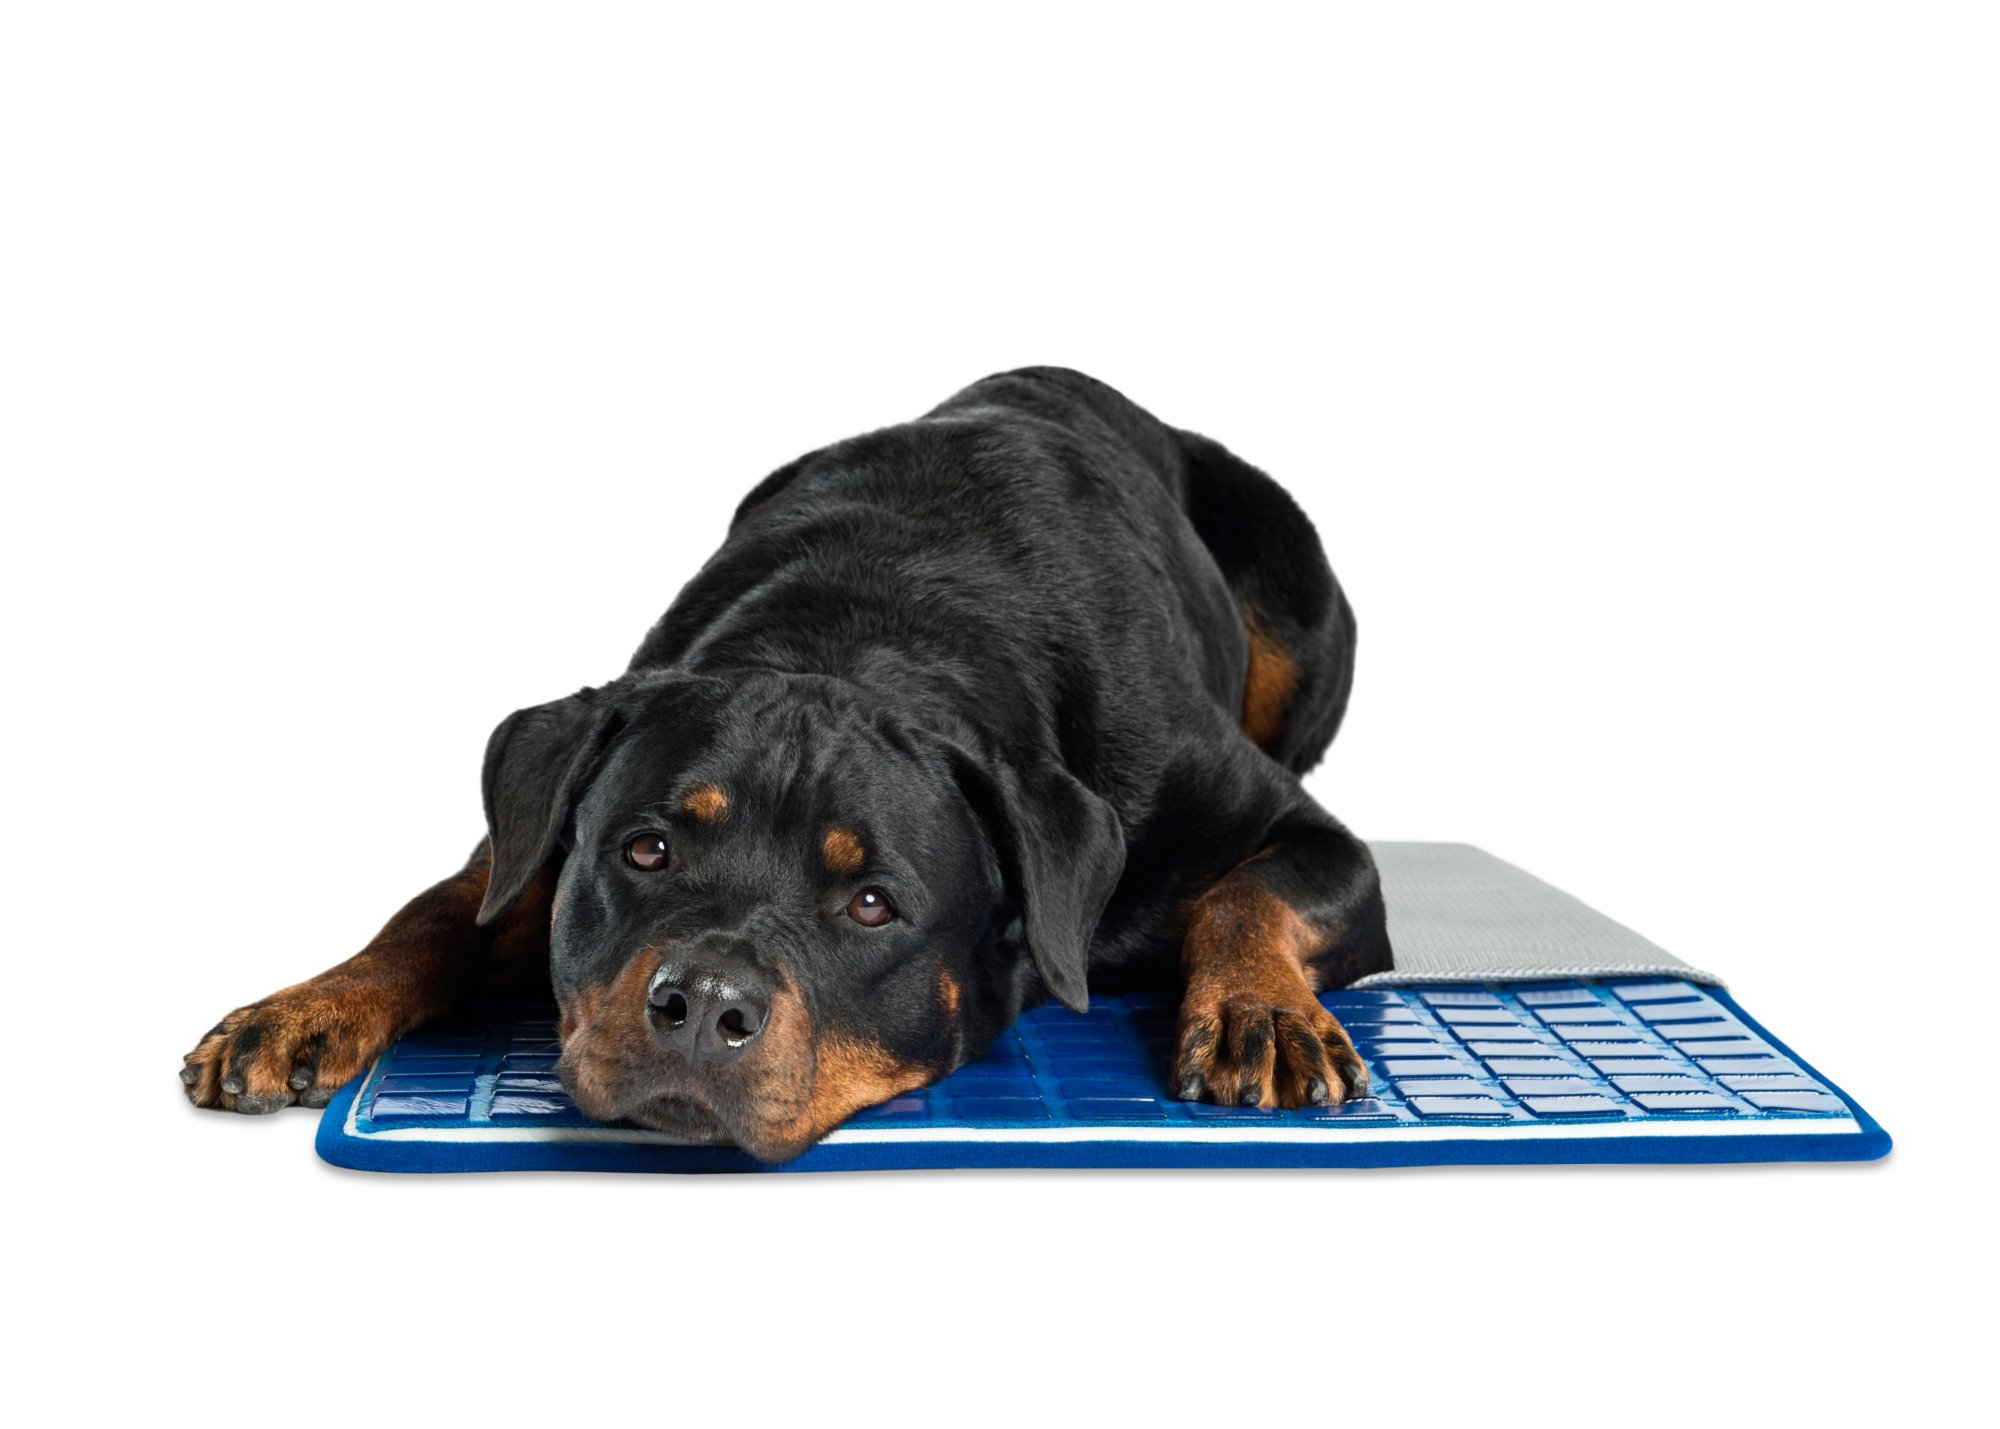 for mats tv cooling upcitemdb dogs pet comfort dog pooch self product mat upc image as cat cushion com seen on polar